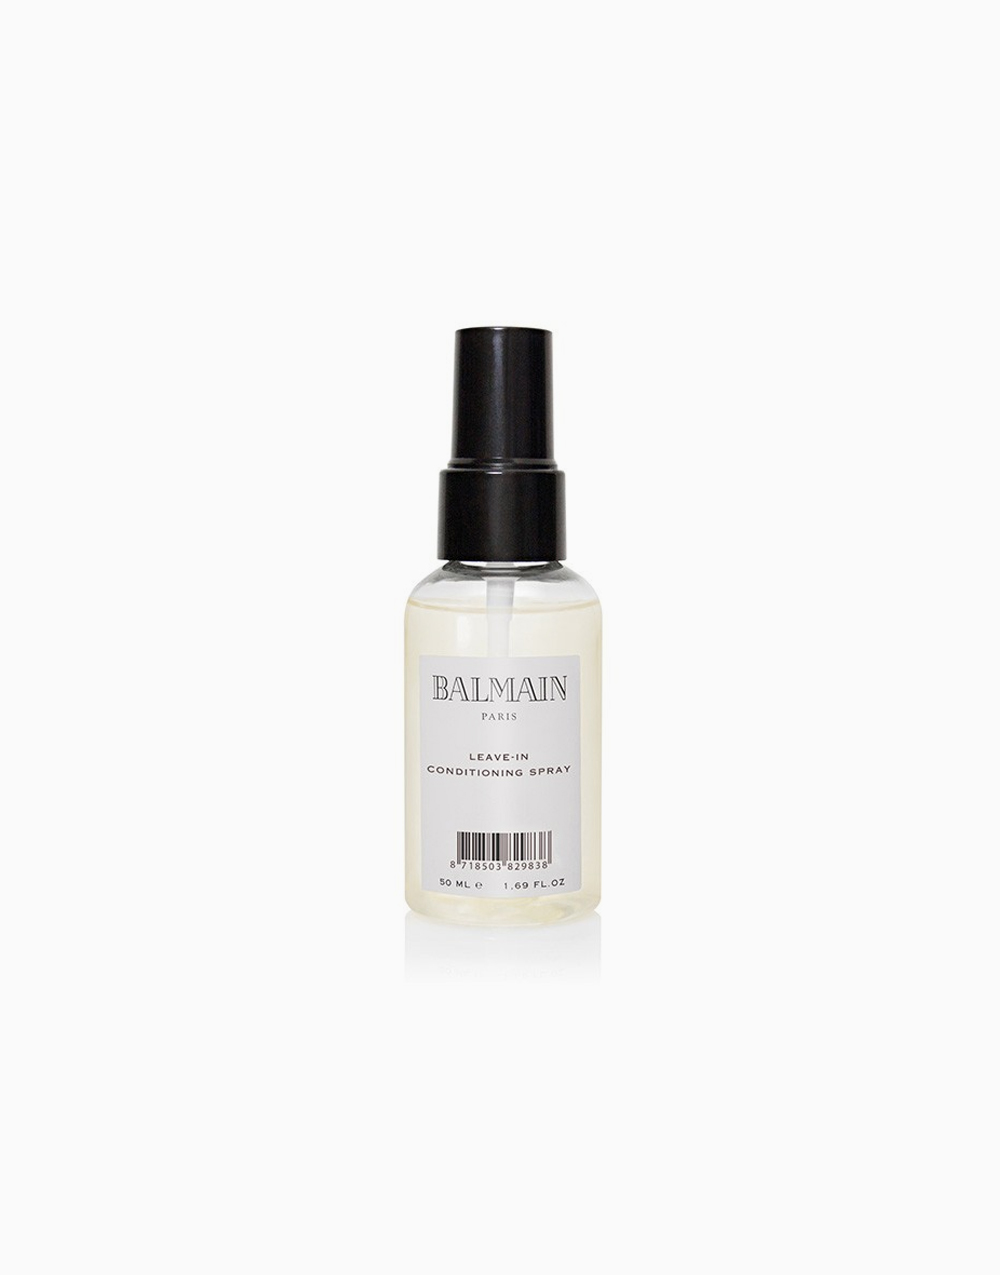 Leave-In Conditioning Spray by Balmain Hair Couture